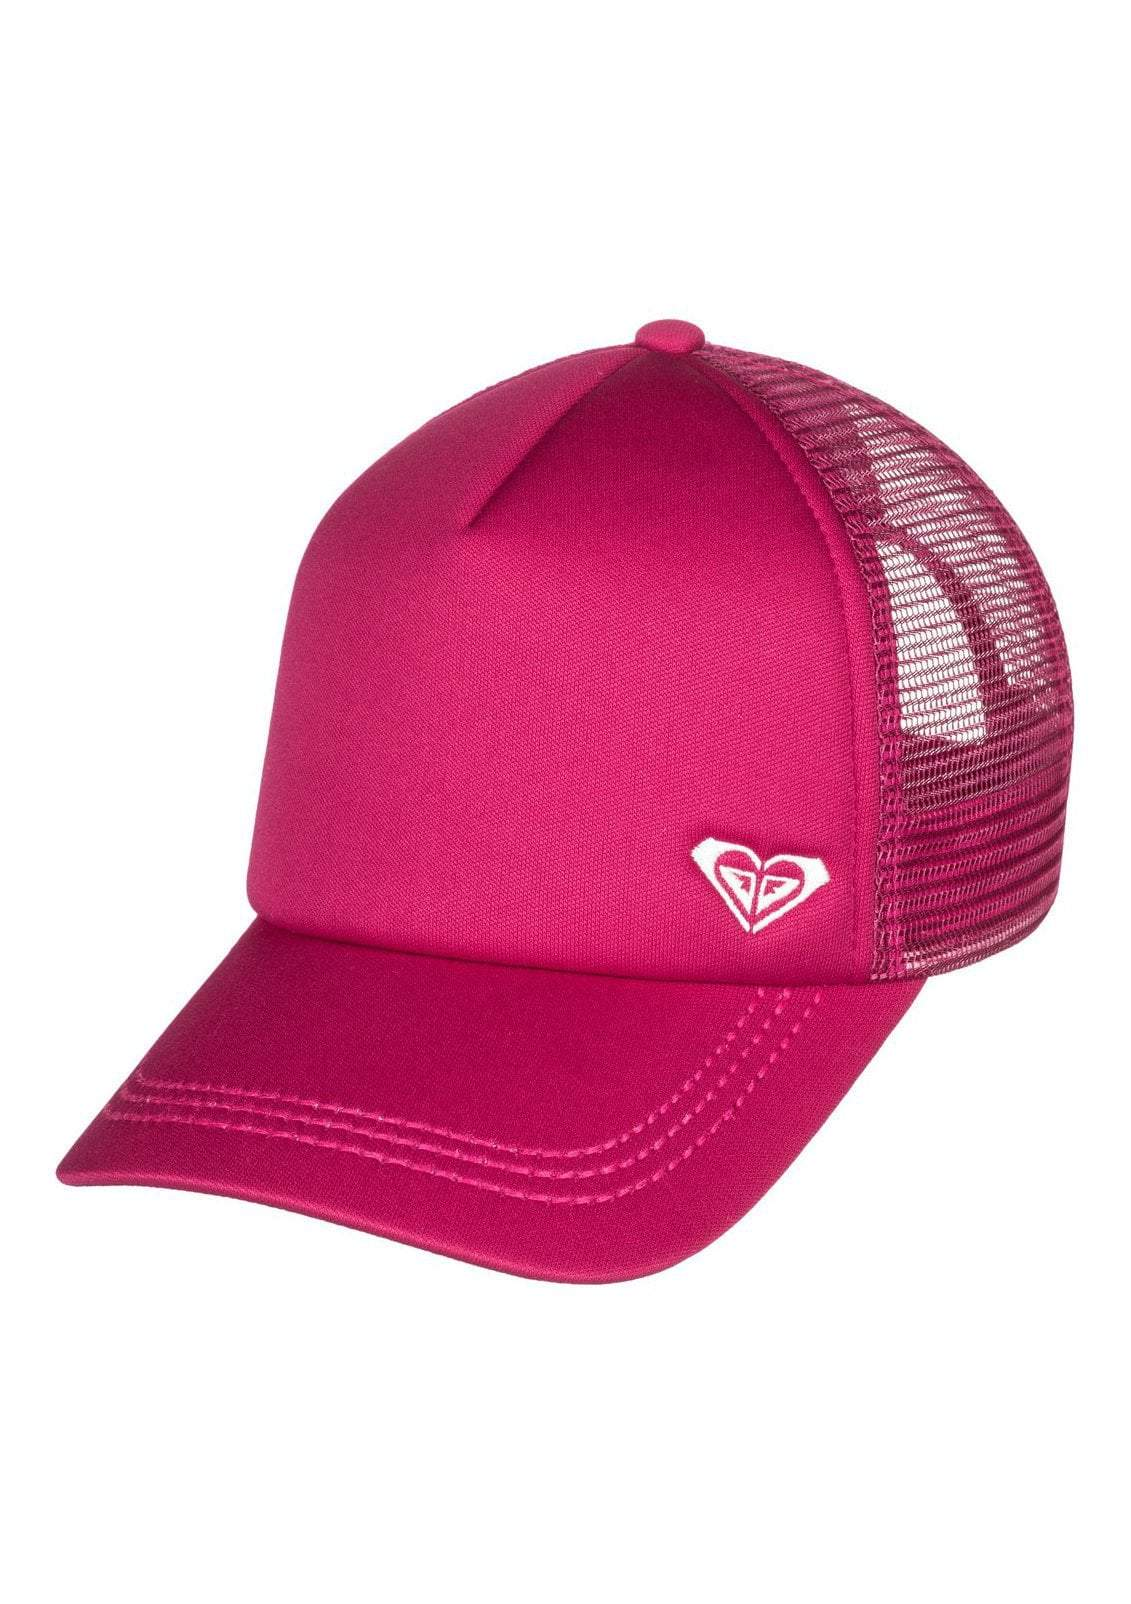 cd7e1e35 Finishline Trucker Hat – Jacks Surfboards